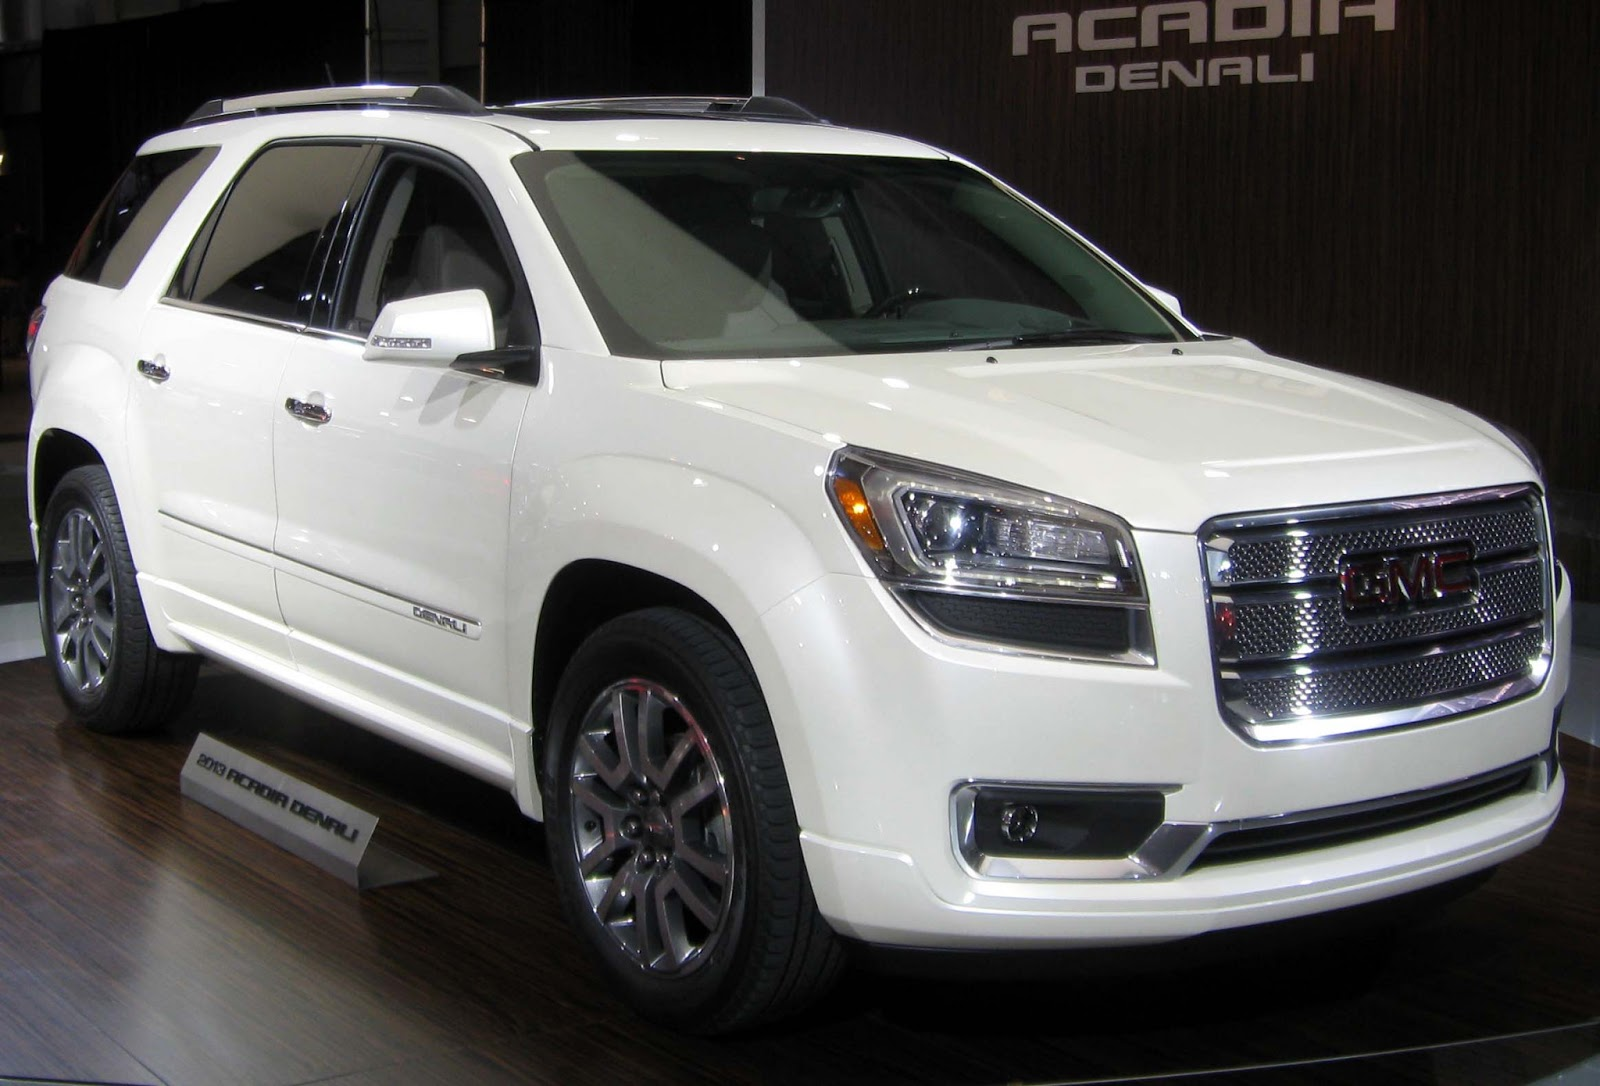 acadia gmc models latest denali terrain capacity cars running